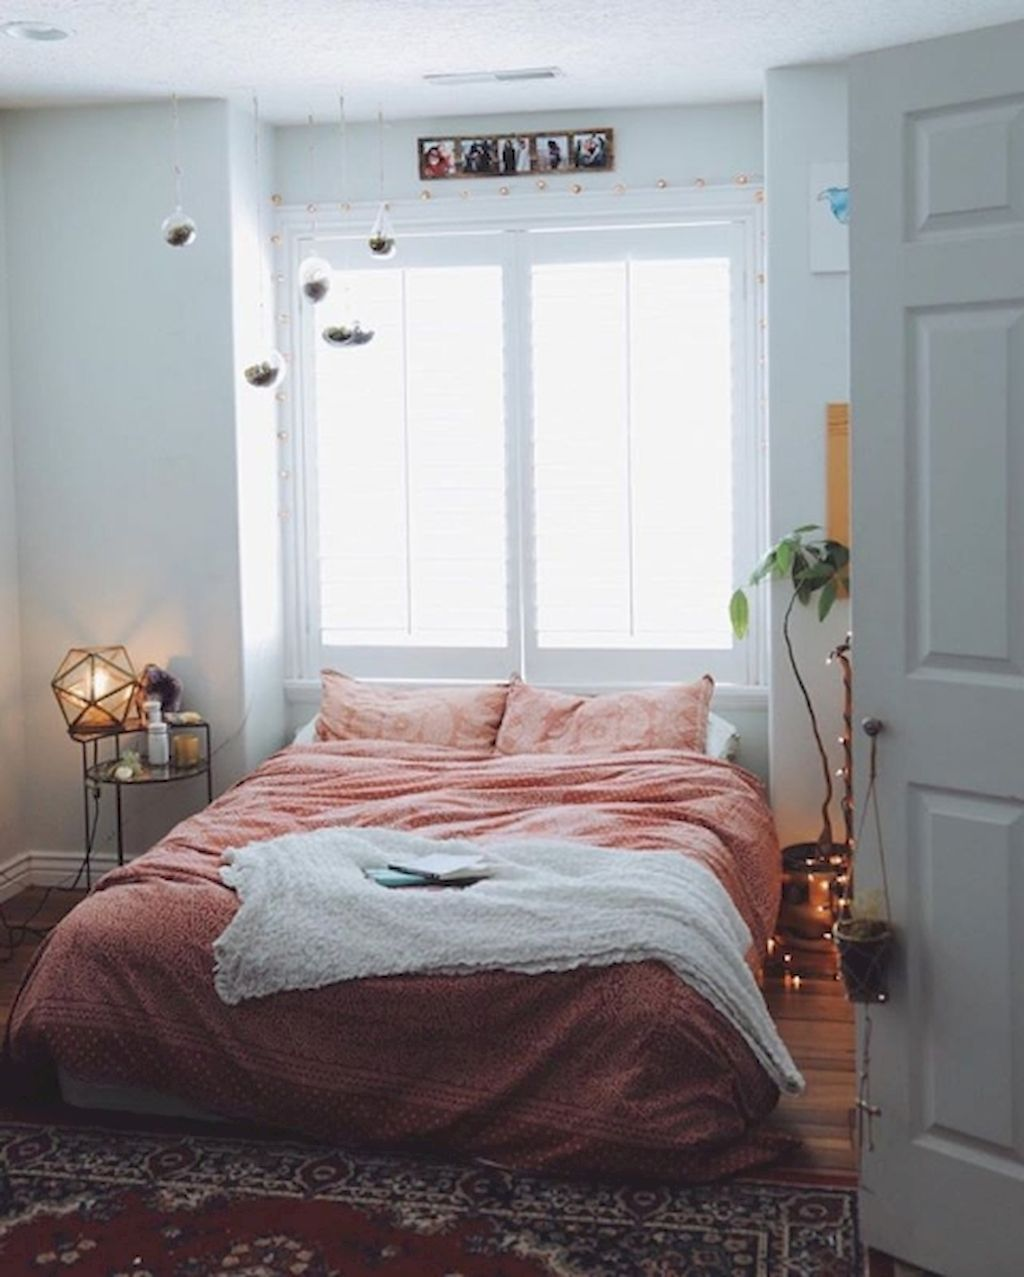 Bedroom Design On A Budget 49 Photo Gallery Website  Simple